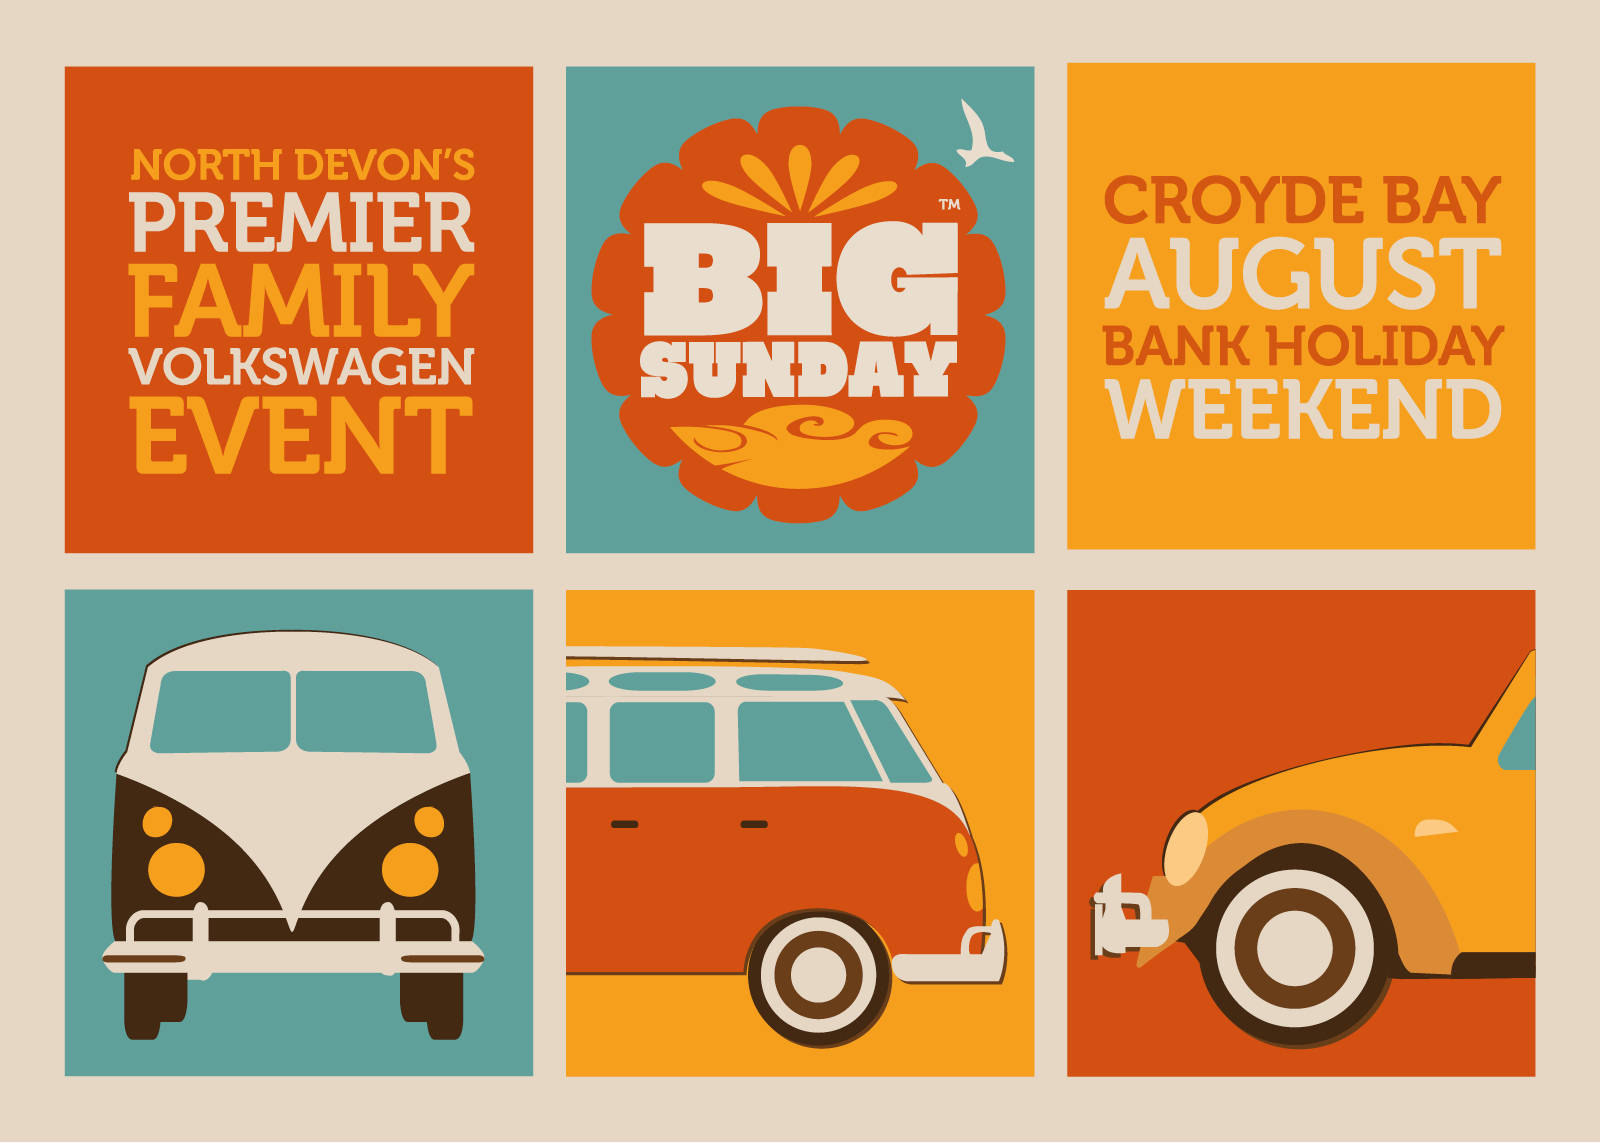 logo-design-brand-strategy-graphic-events-outdoor-exhibition-charity-north-devon-the-great-field-big-sunday